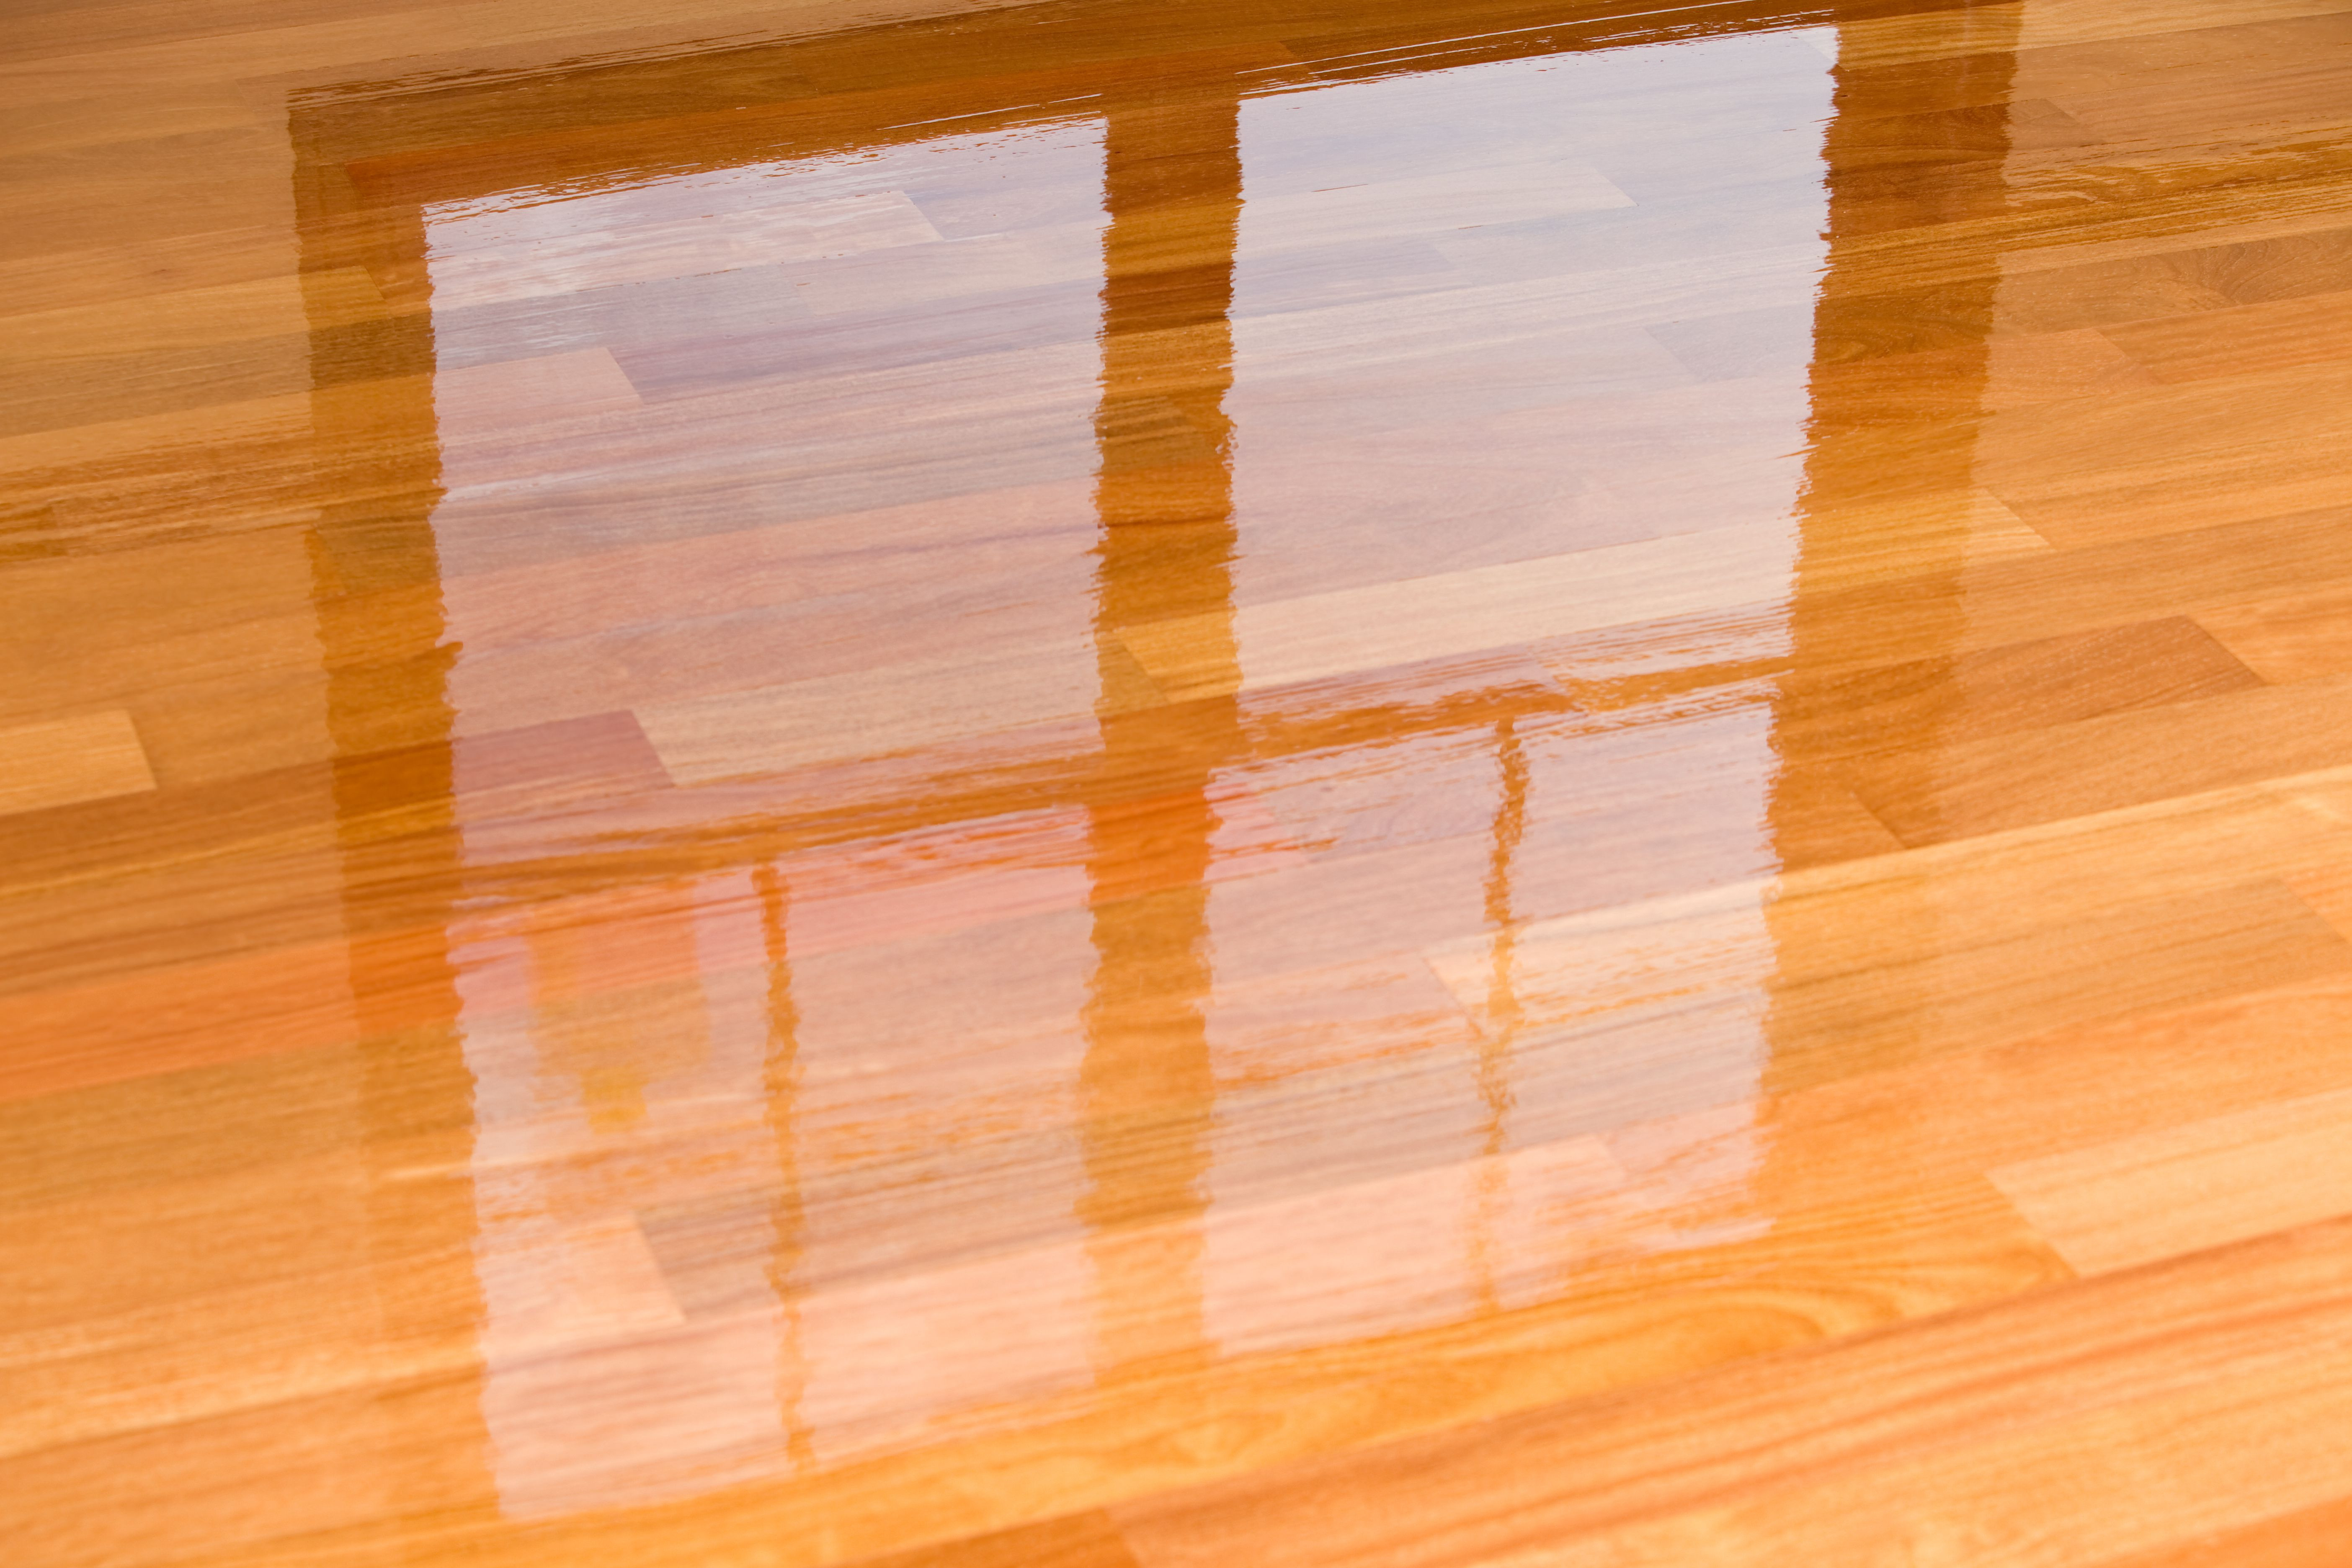 humidity range for hardwood floors of guide to laminate flooring water and damage repair regarding wet polyurethane on new hardwood floor with window reflection 183846705 582e34da3df78c6f6a403968